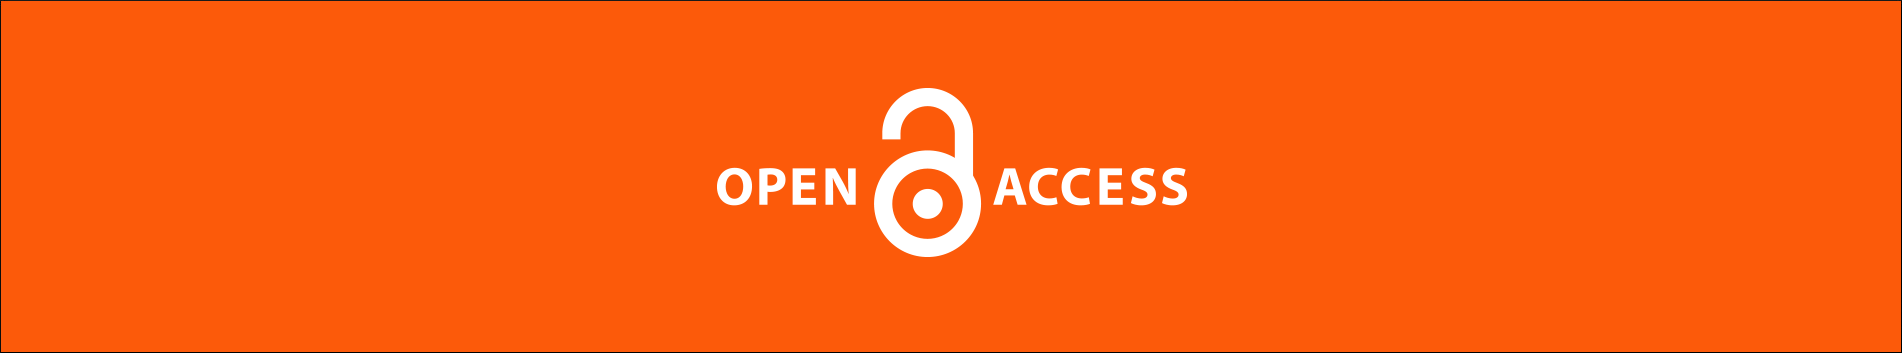 Book: Open Access and the Humanities feature image